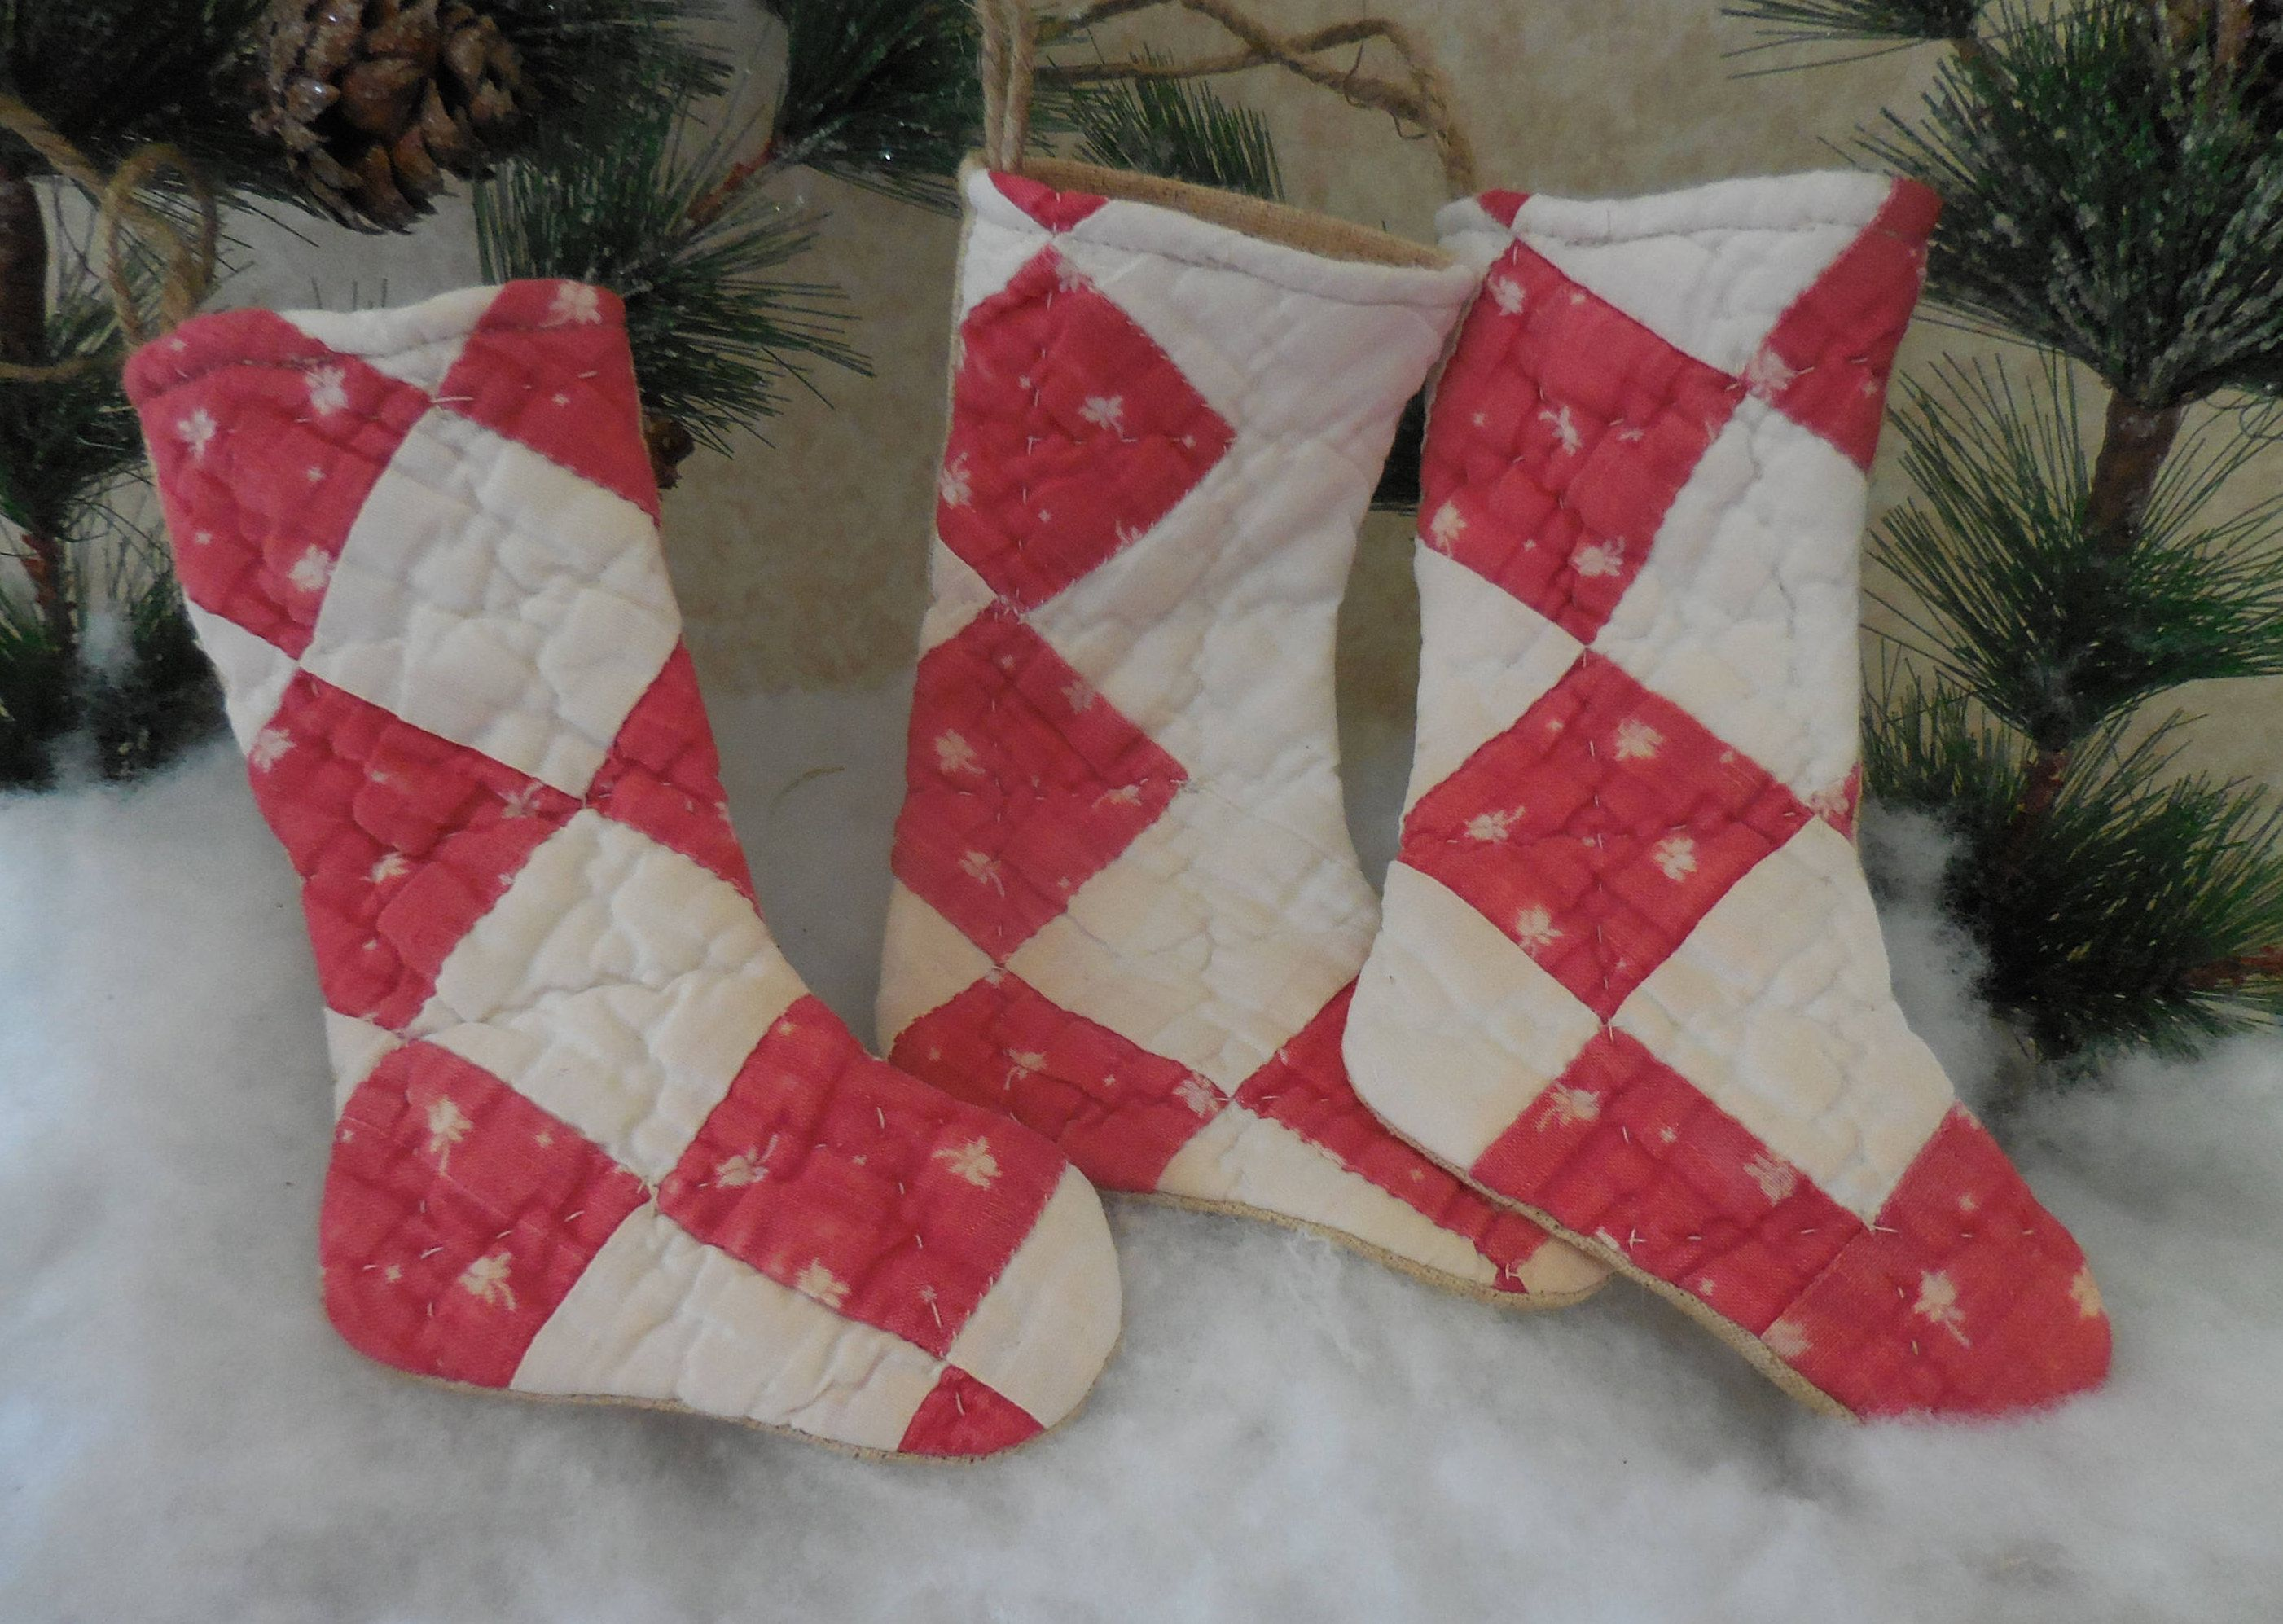 Handmade Vintage Quilted Stocking Ornaments Bowl Fillers Christmas Gift by #auntiemeowsprims on Etsy